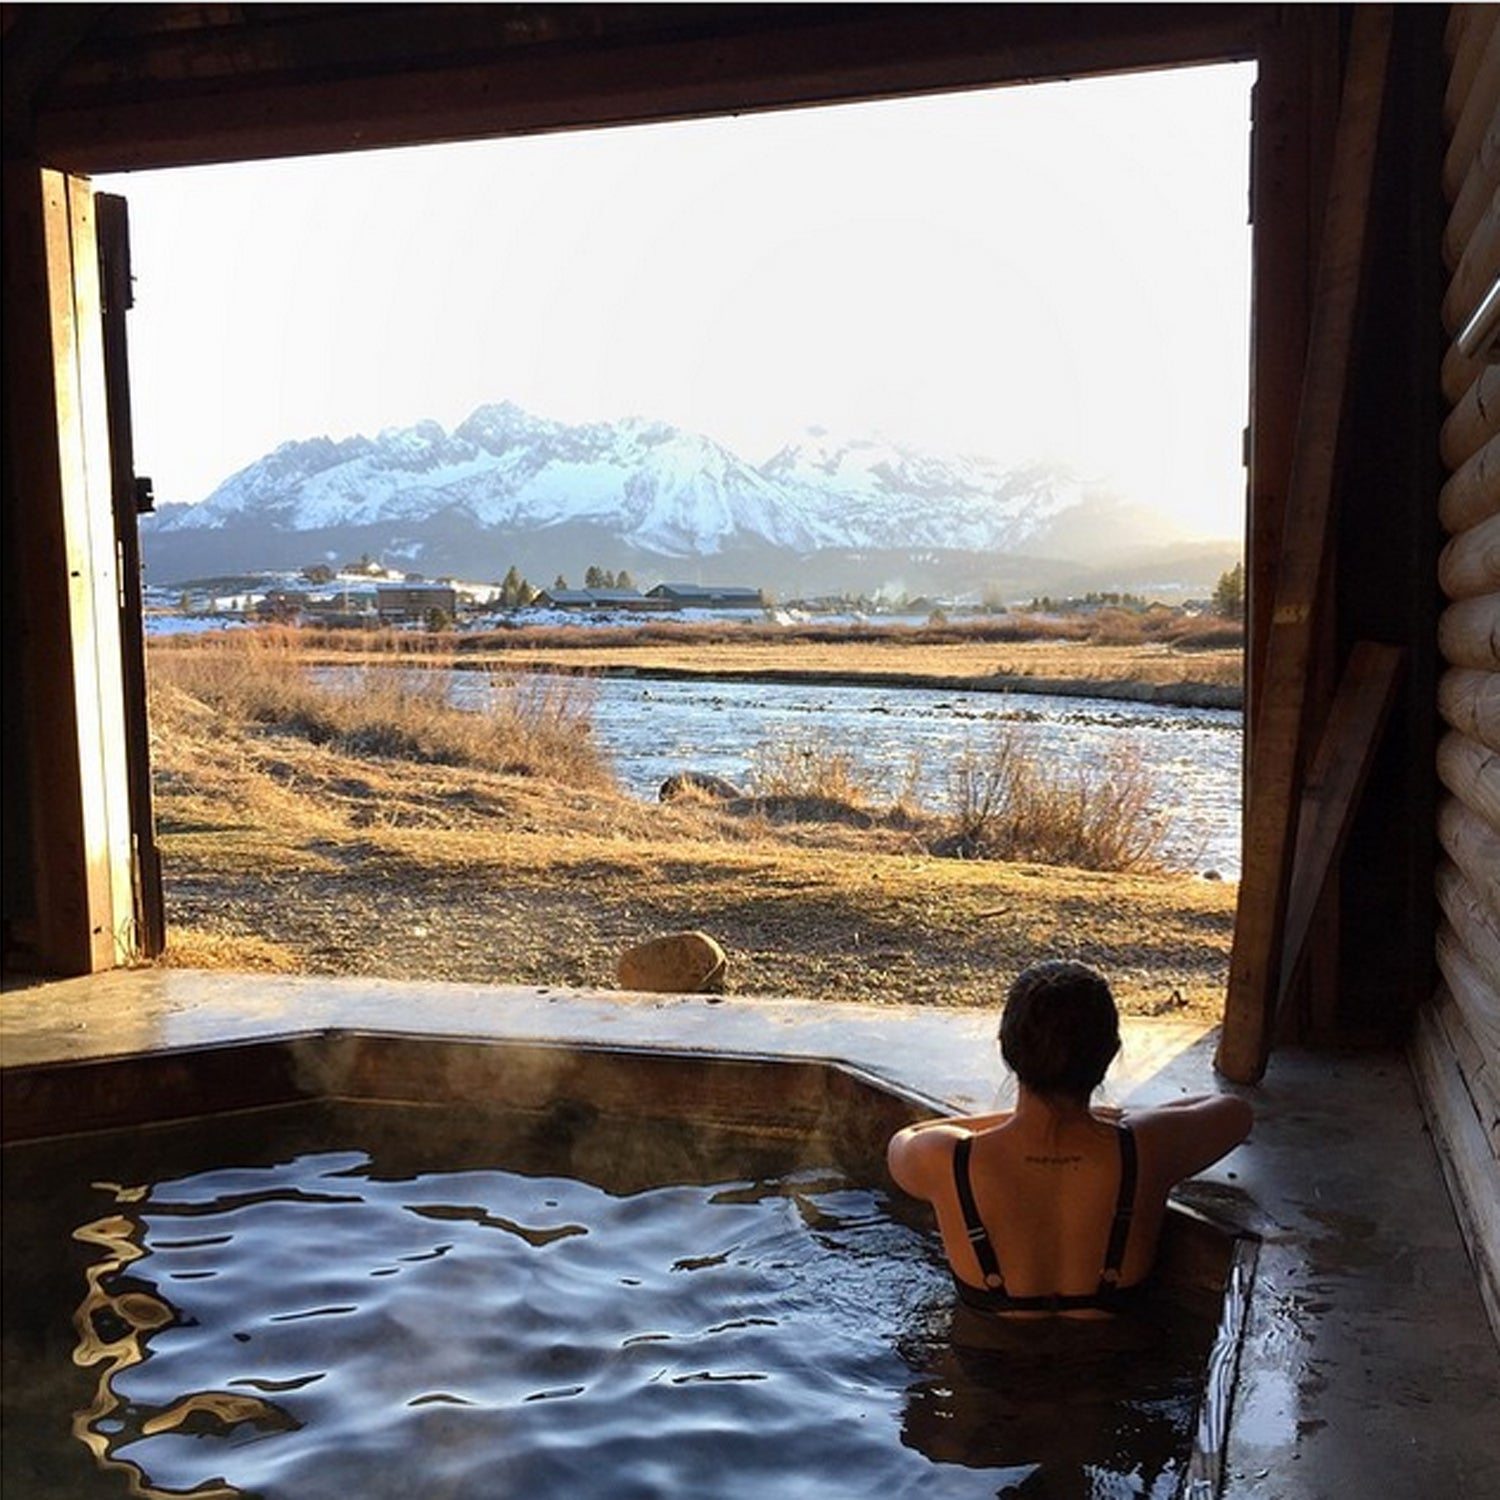 Step into early spring and a little geothermal healing with the @bontraveler #visitsunvalley #seeksunvalley #stanleyidaho #hotsprings #prunedtoes